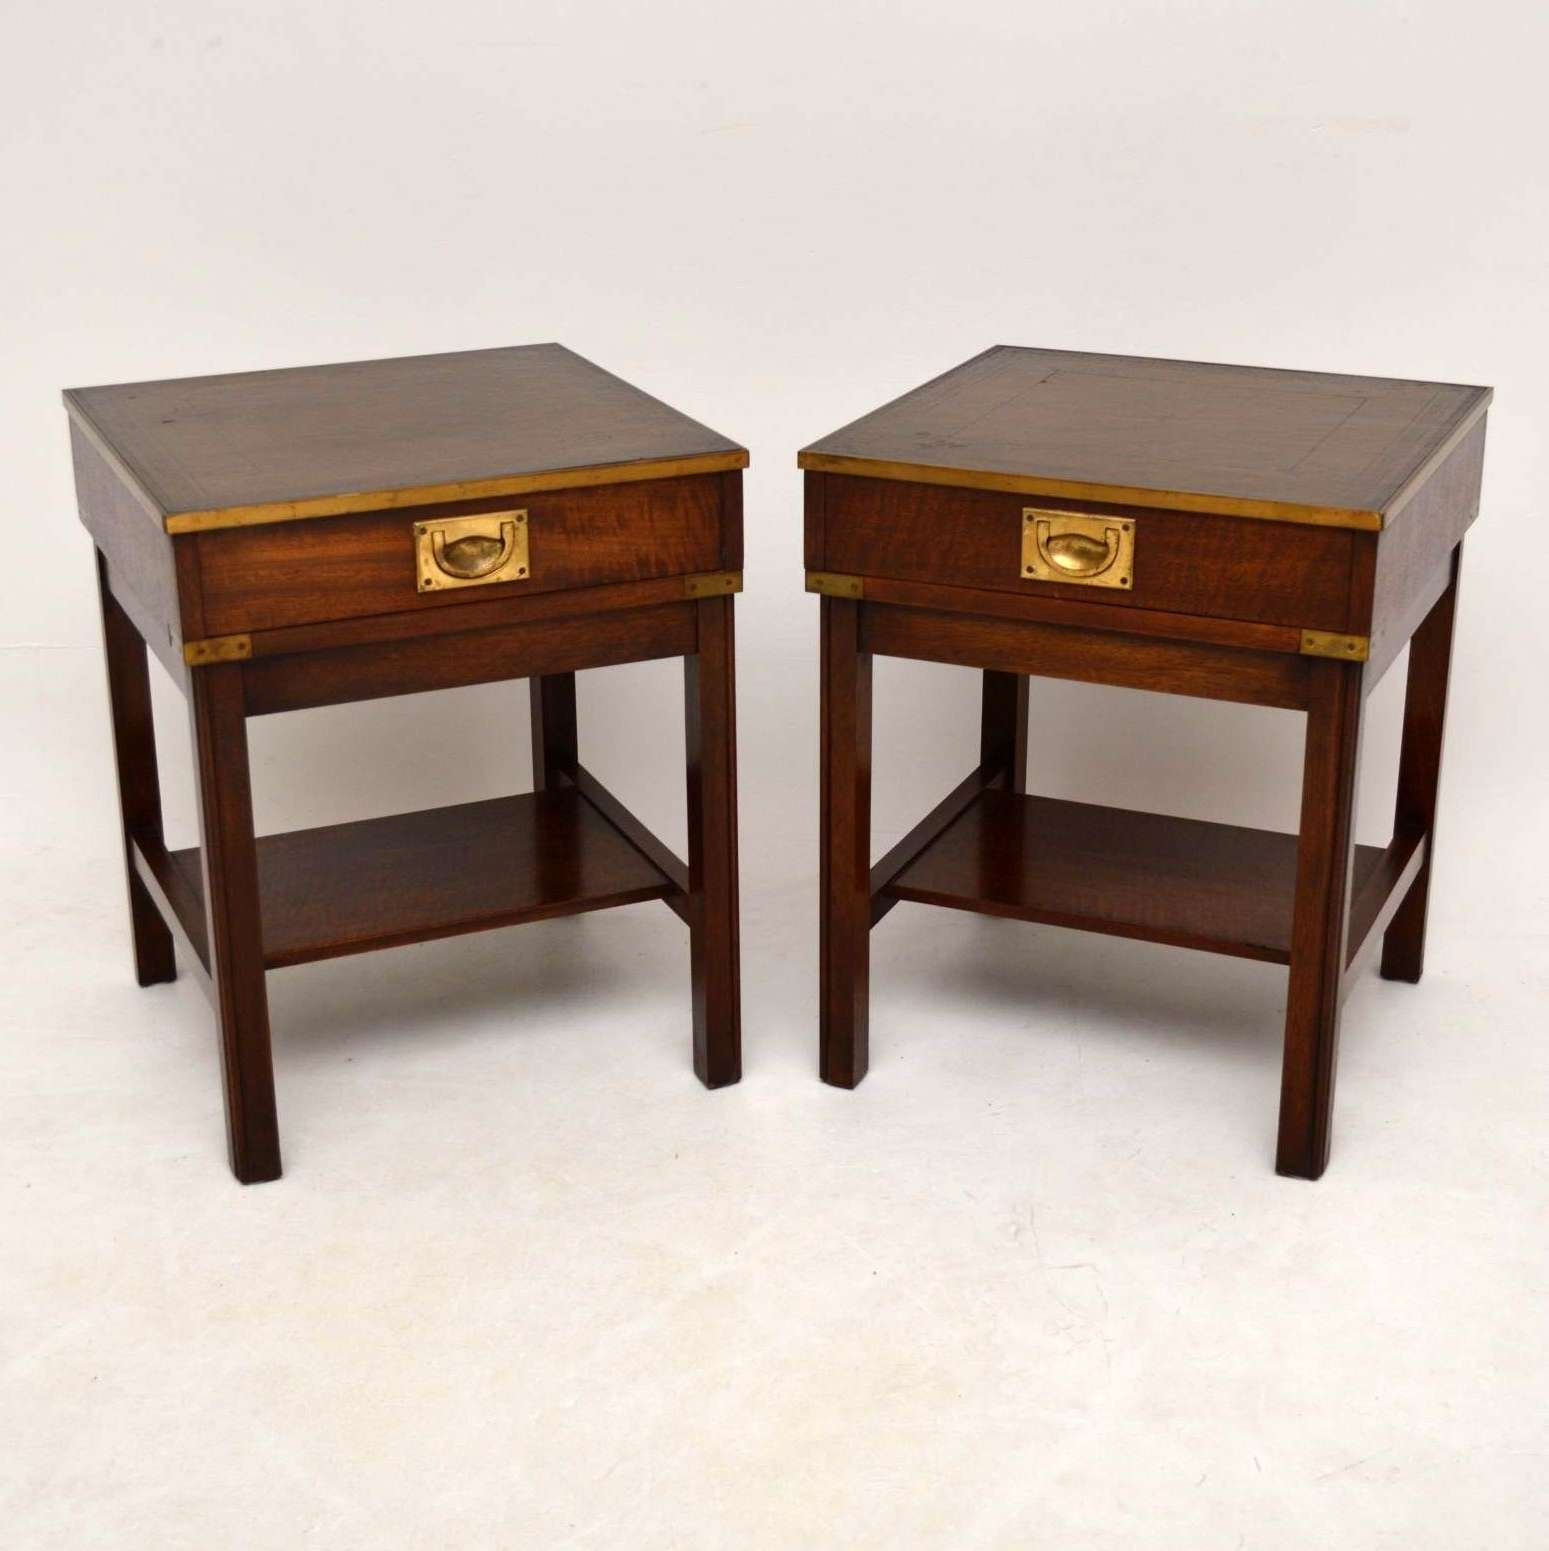 Coffee Table : Marvelous Occasional Tables Center Table Living Pertaining To Well Liked Campaign Coffee Tables (View 5 of 20)